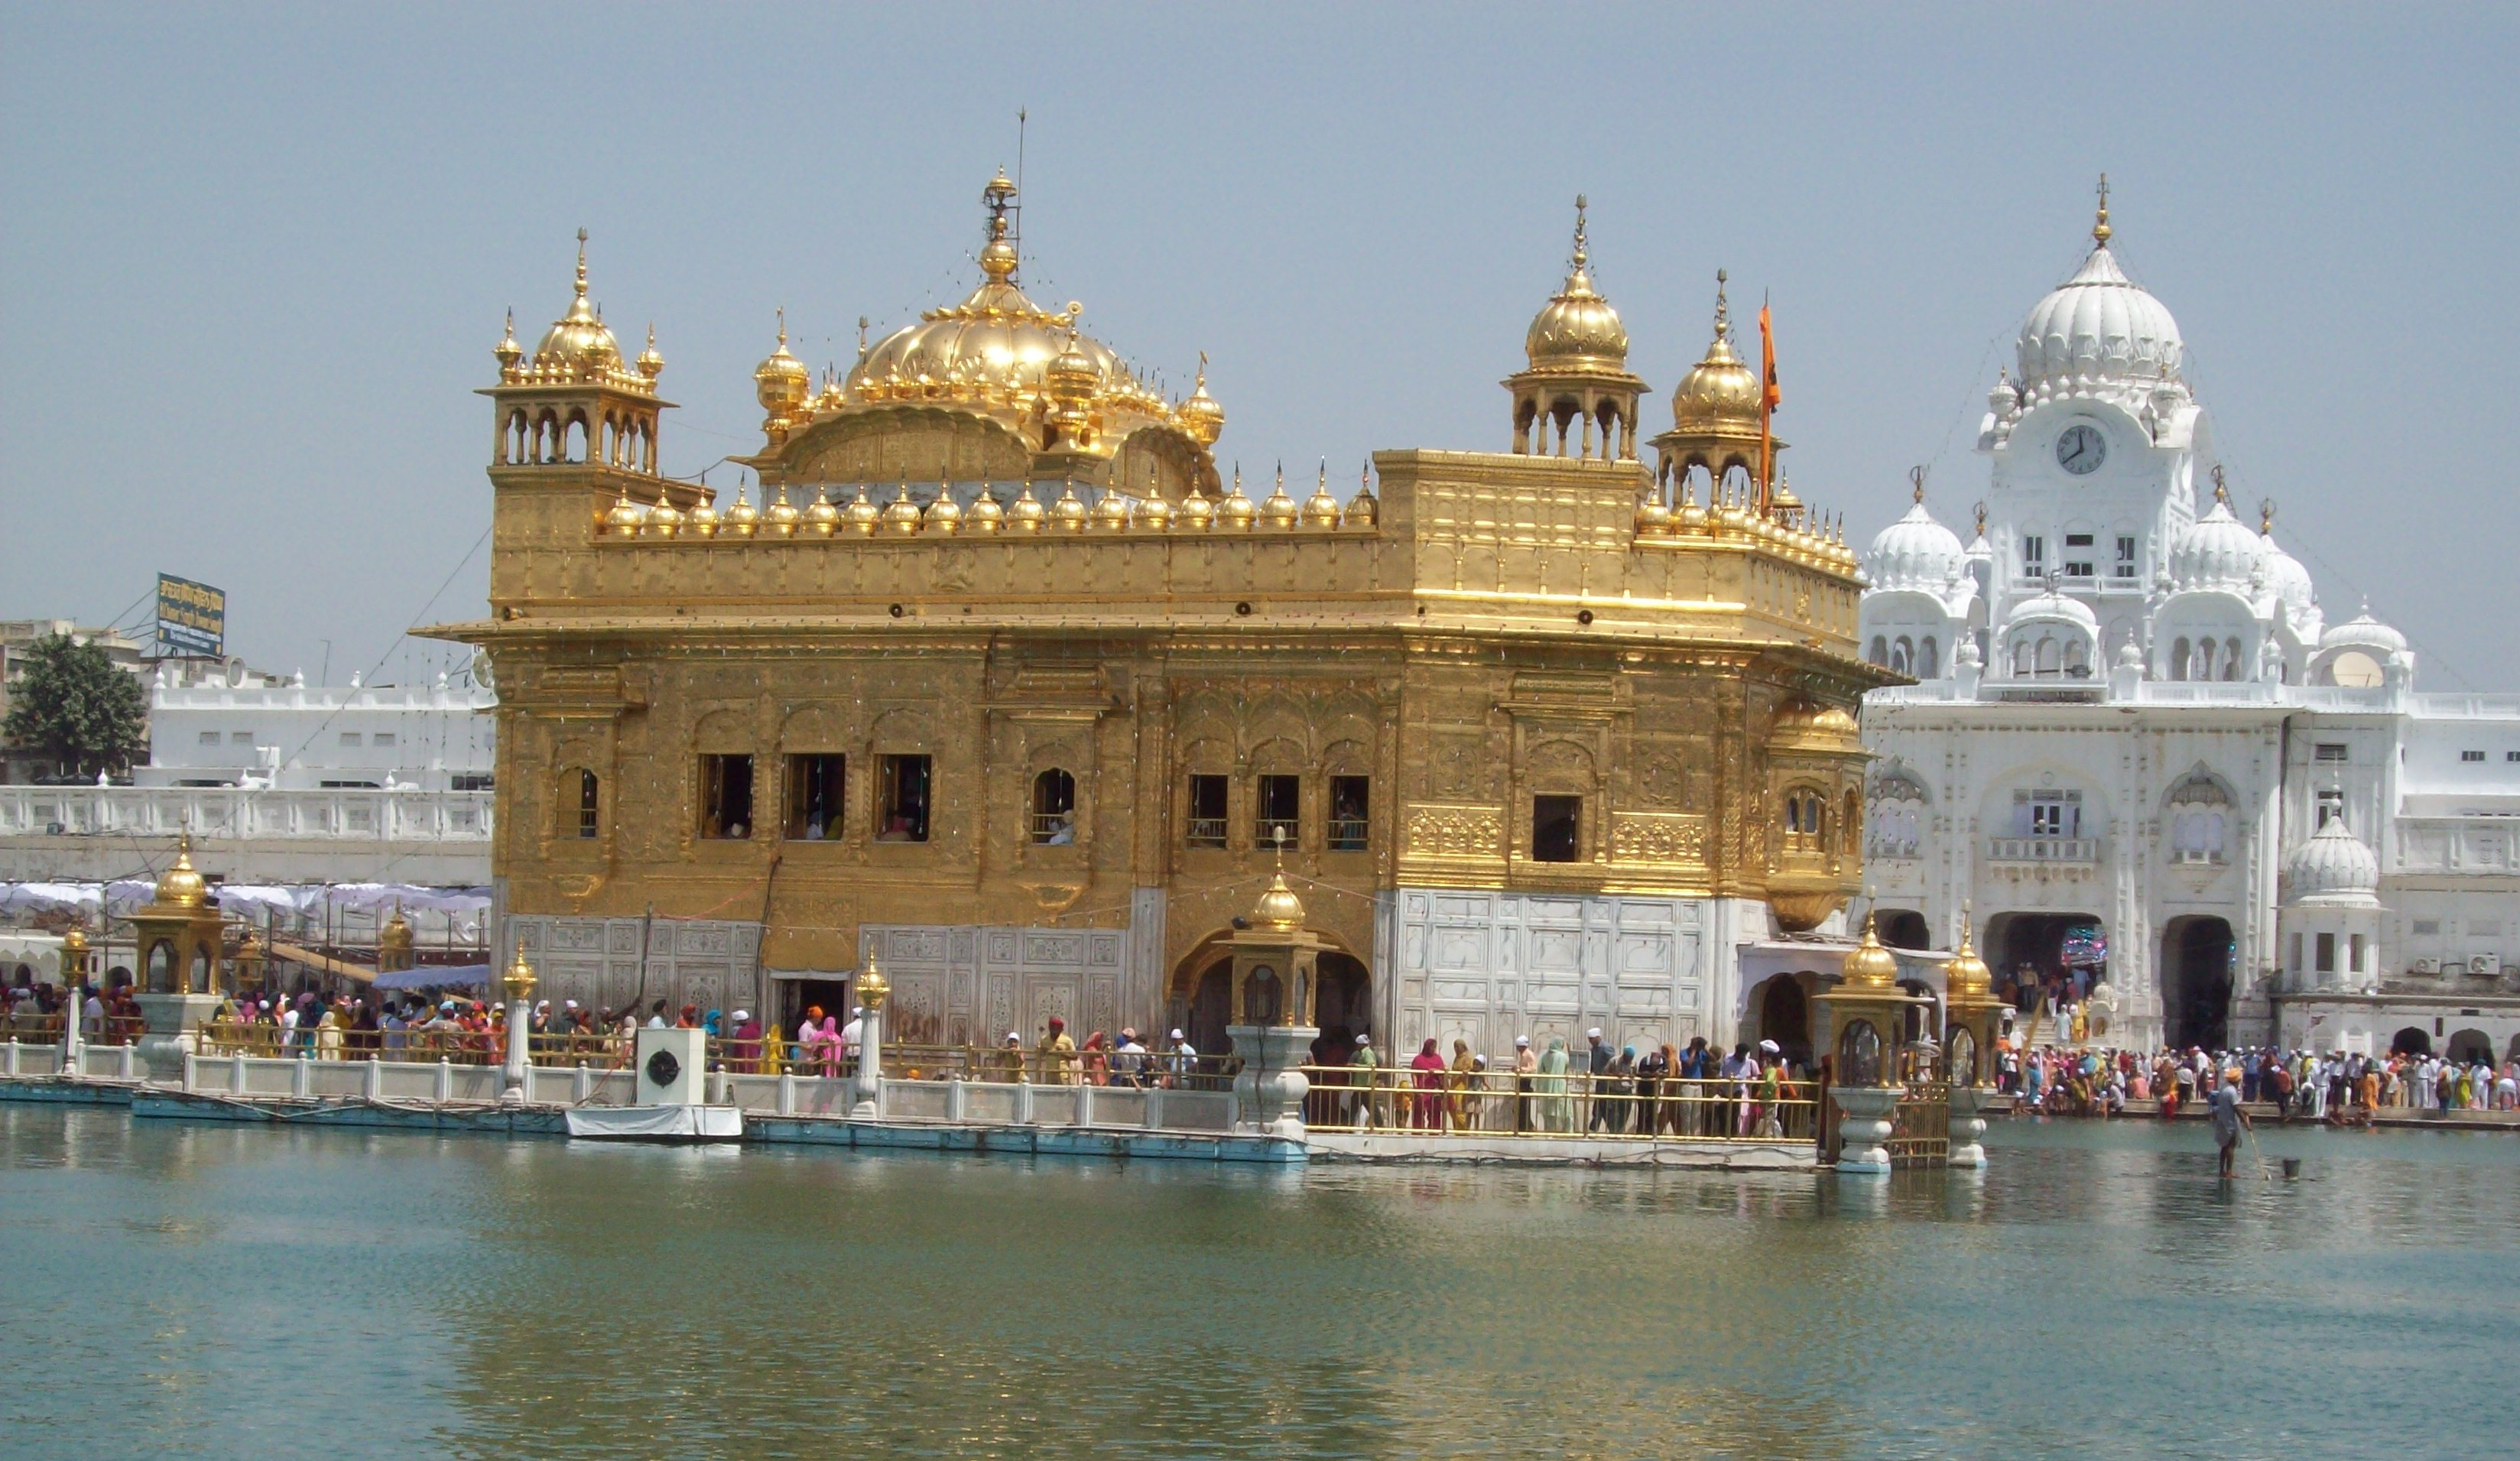 essay golden temple amritsar Check out our top free essays on golden temple to help you write your own essay brainiacom join now login amritsar and kerala.